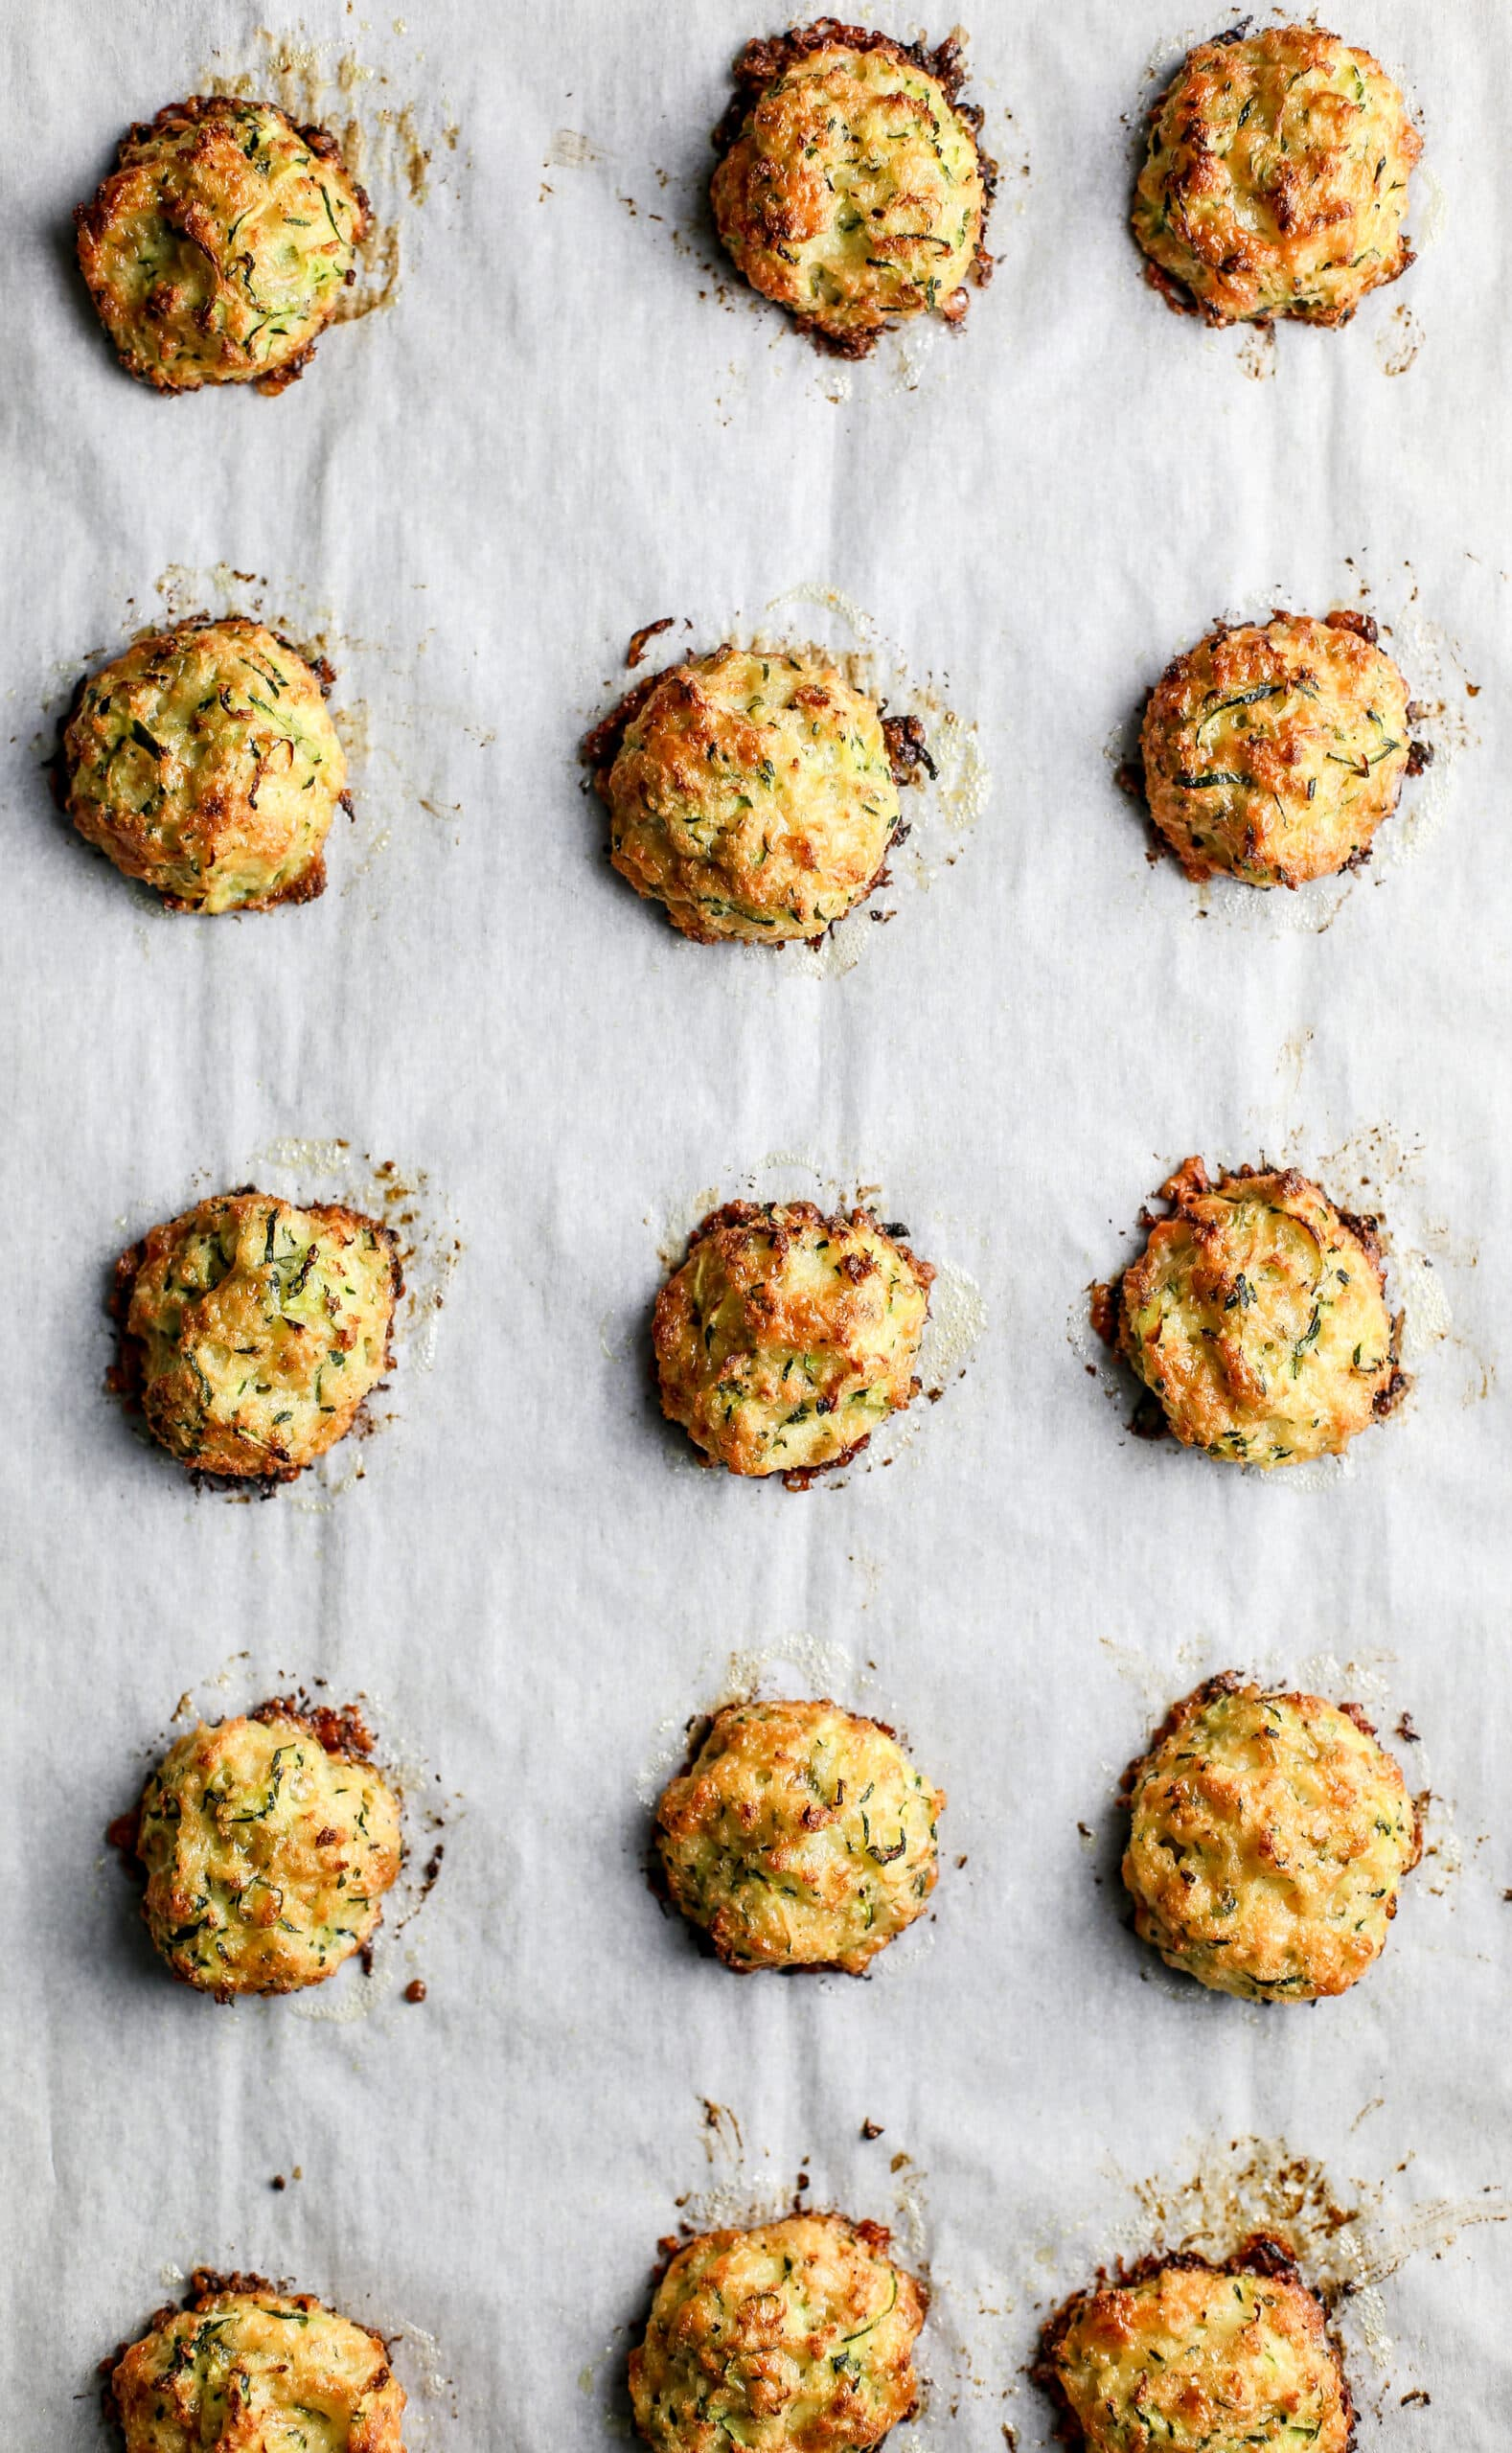 Baked zucchini bites on top of a parchment paper lined baking sheet.